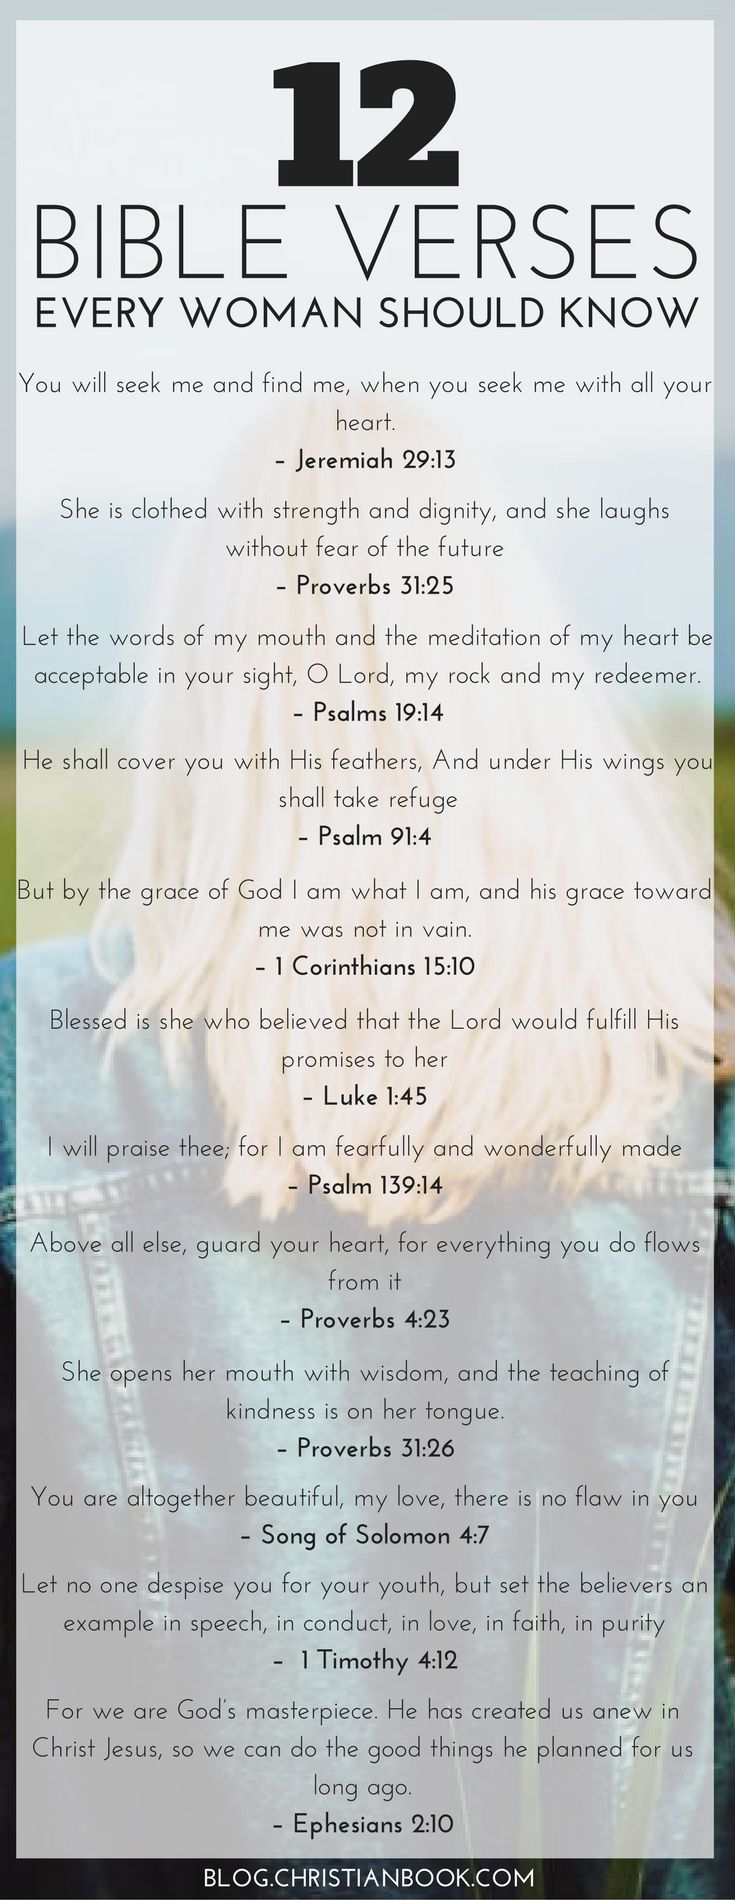 Our favorite Bible verses to encourage, heal and nourish women in all seasons of life - 12 Bible Verses Every Woman Should Know